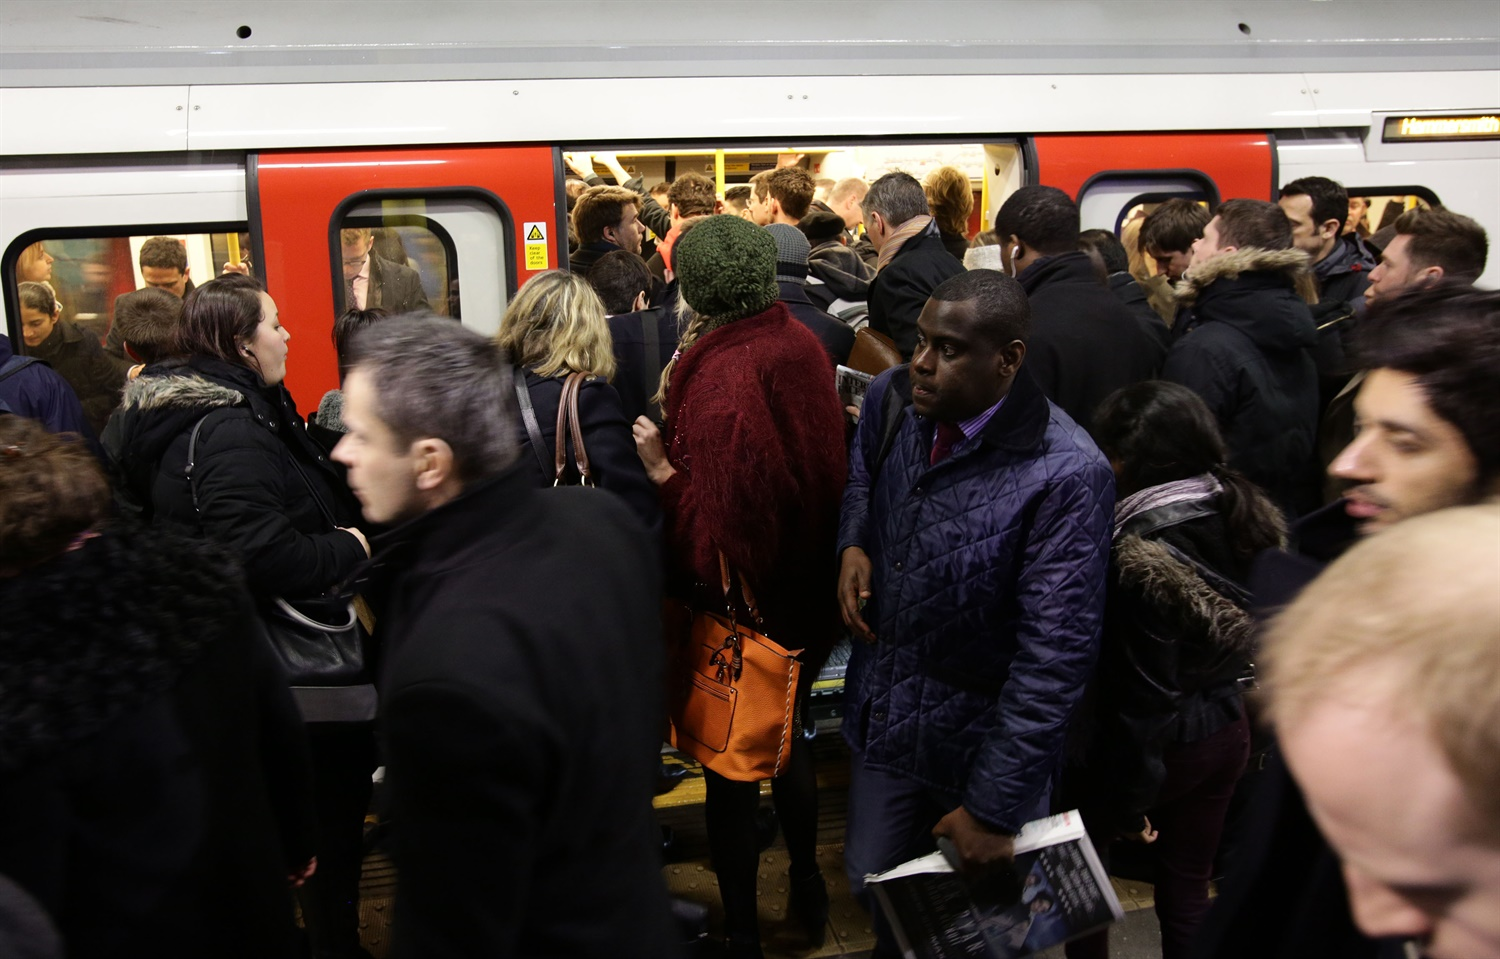 Severe delays on Piccadilly Line as union urges total closure until fleet is fixed